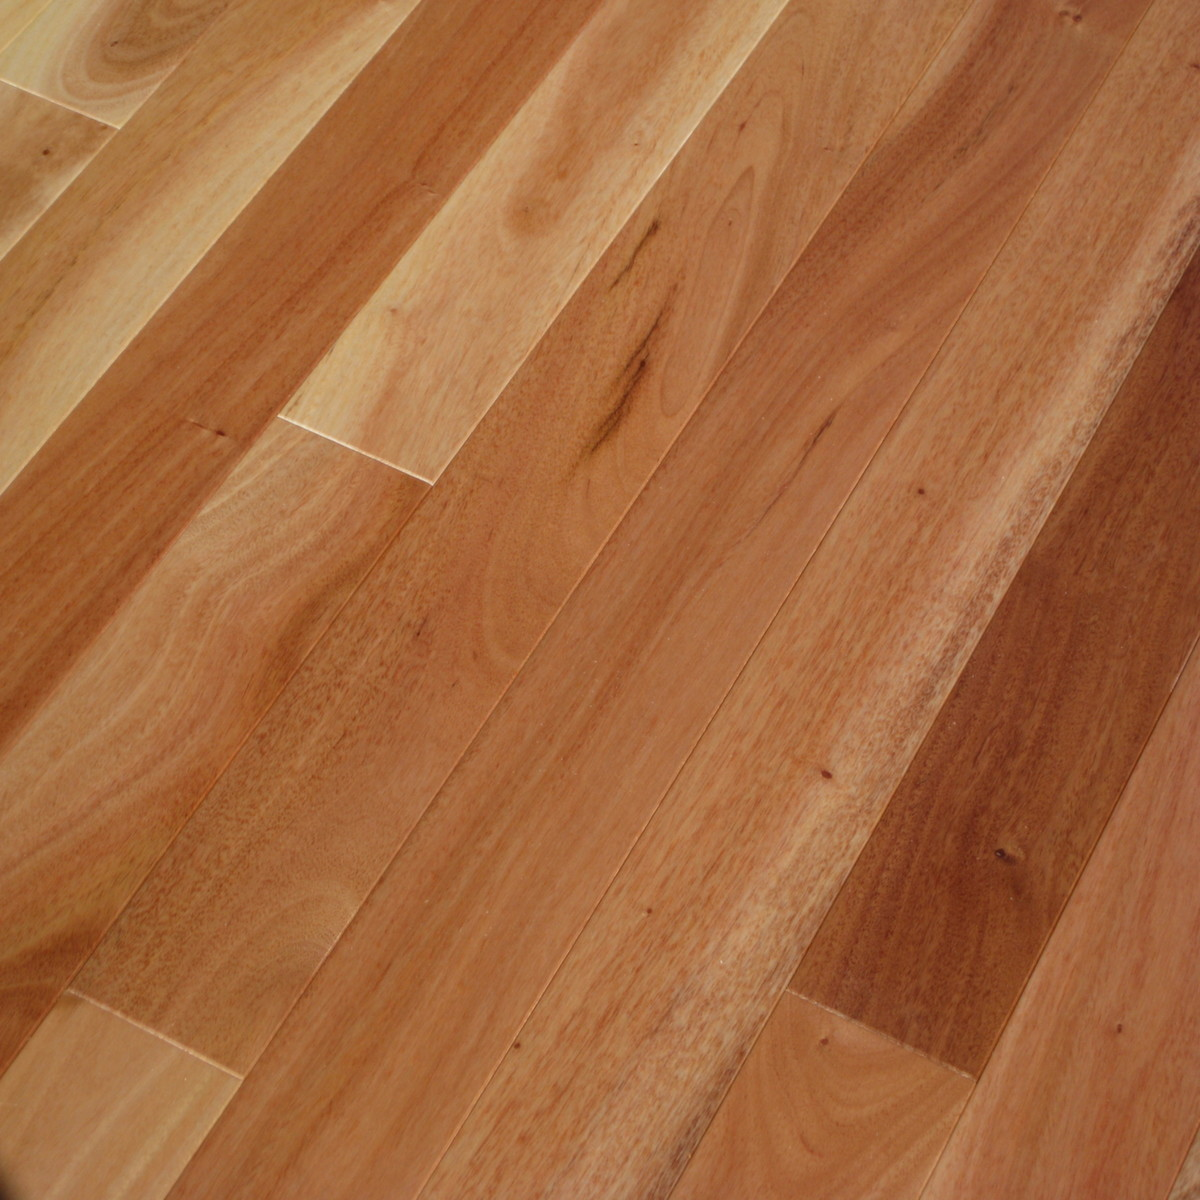 Wood Flooring Product : Engineered hardwood flooring green  ford